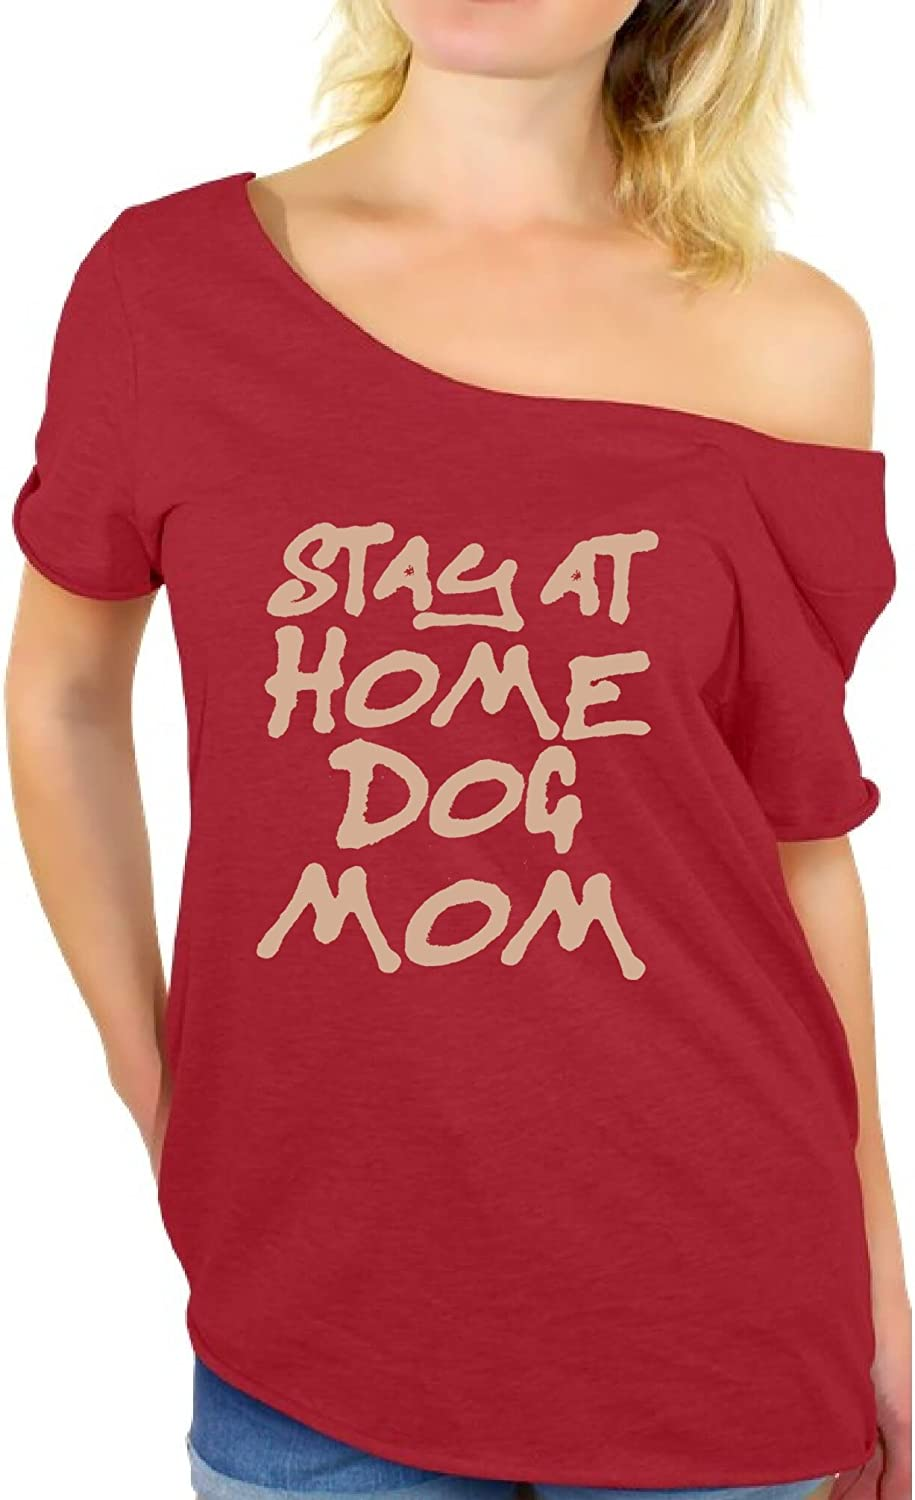 Awkward Styles Women's Stay at Home Dog Mom Graphic Off Shoulder Tops T Shirt for Dog Lovers